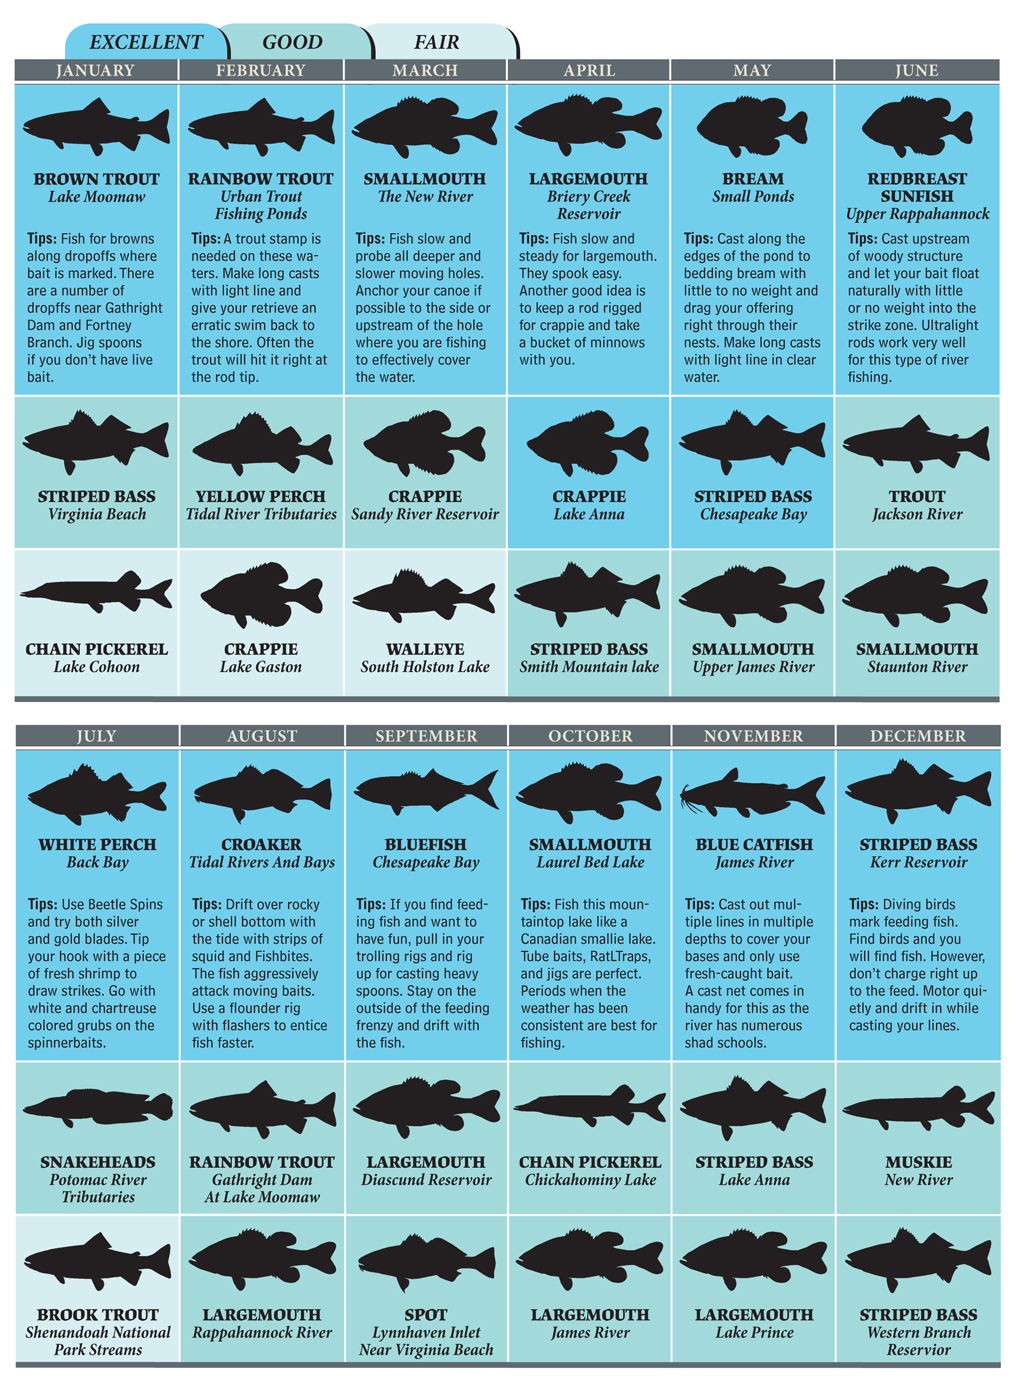 Top Spots for Virginia Fishing in 2012